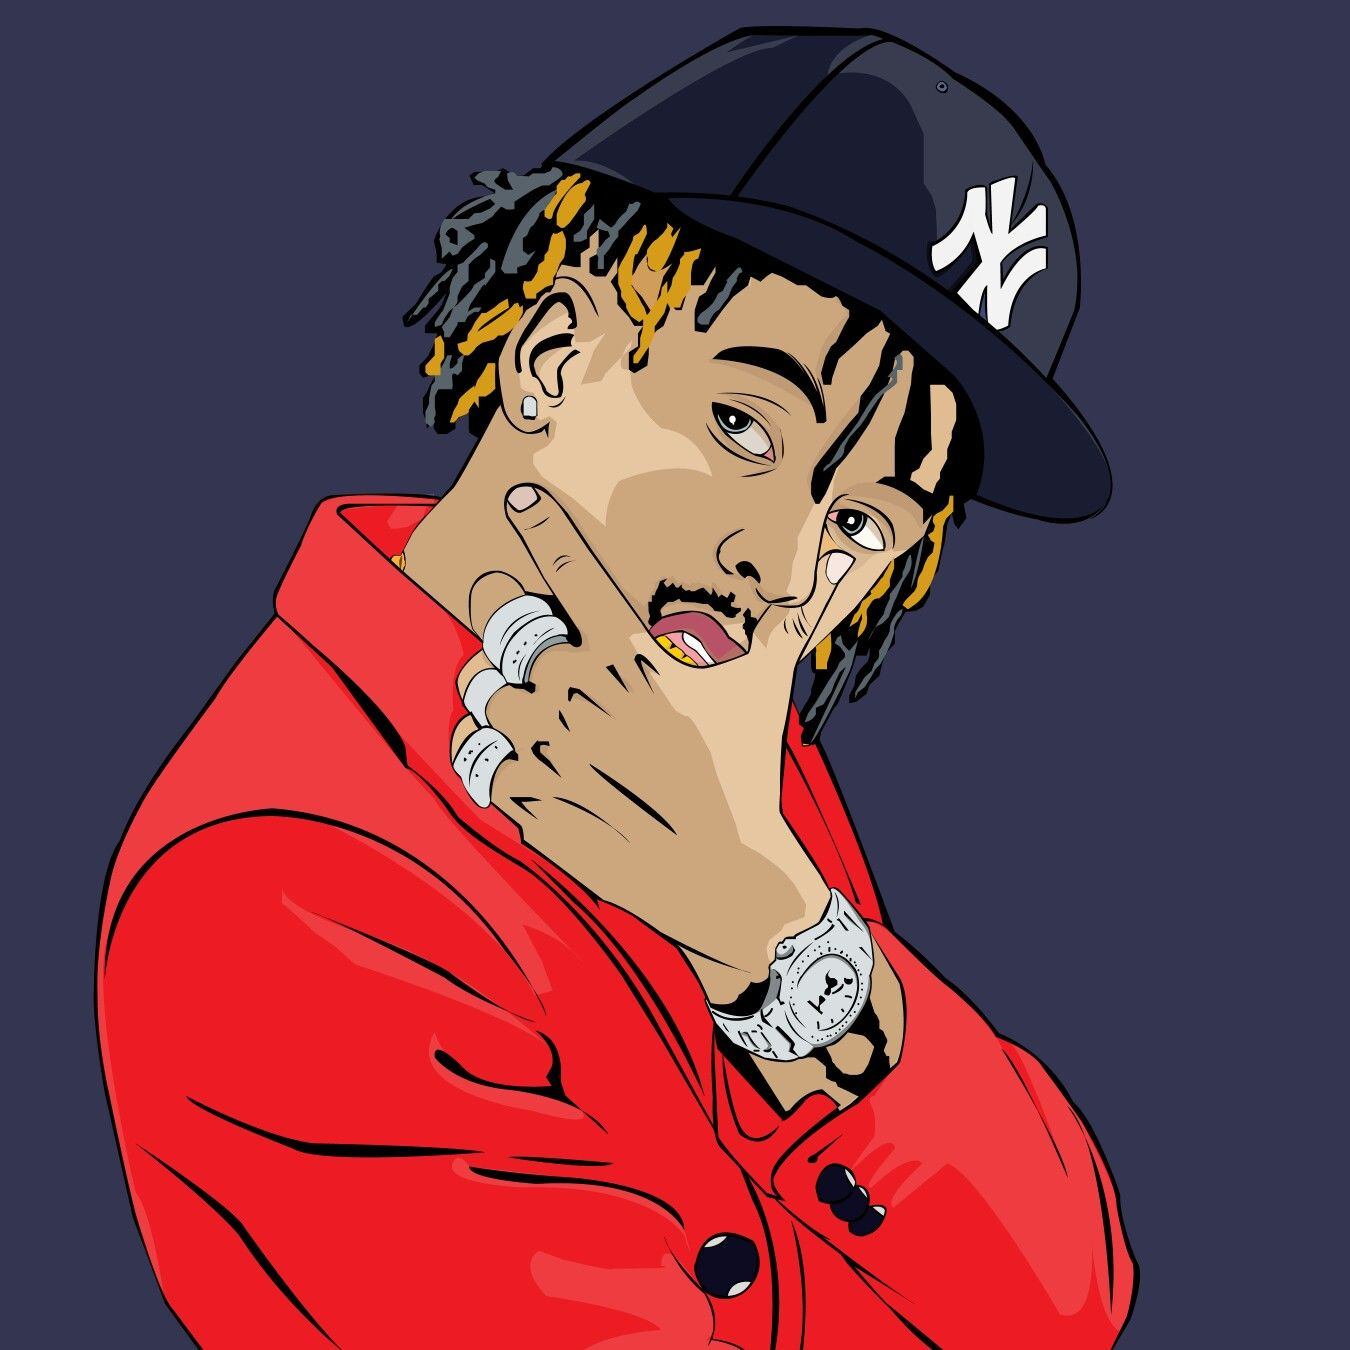 Rich the kid art by paulkawira Seni, Pria